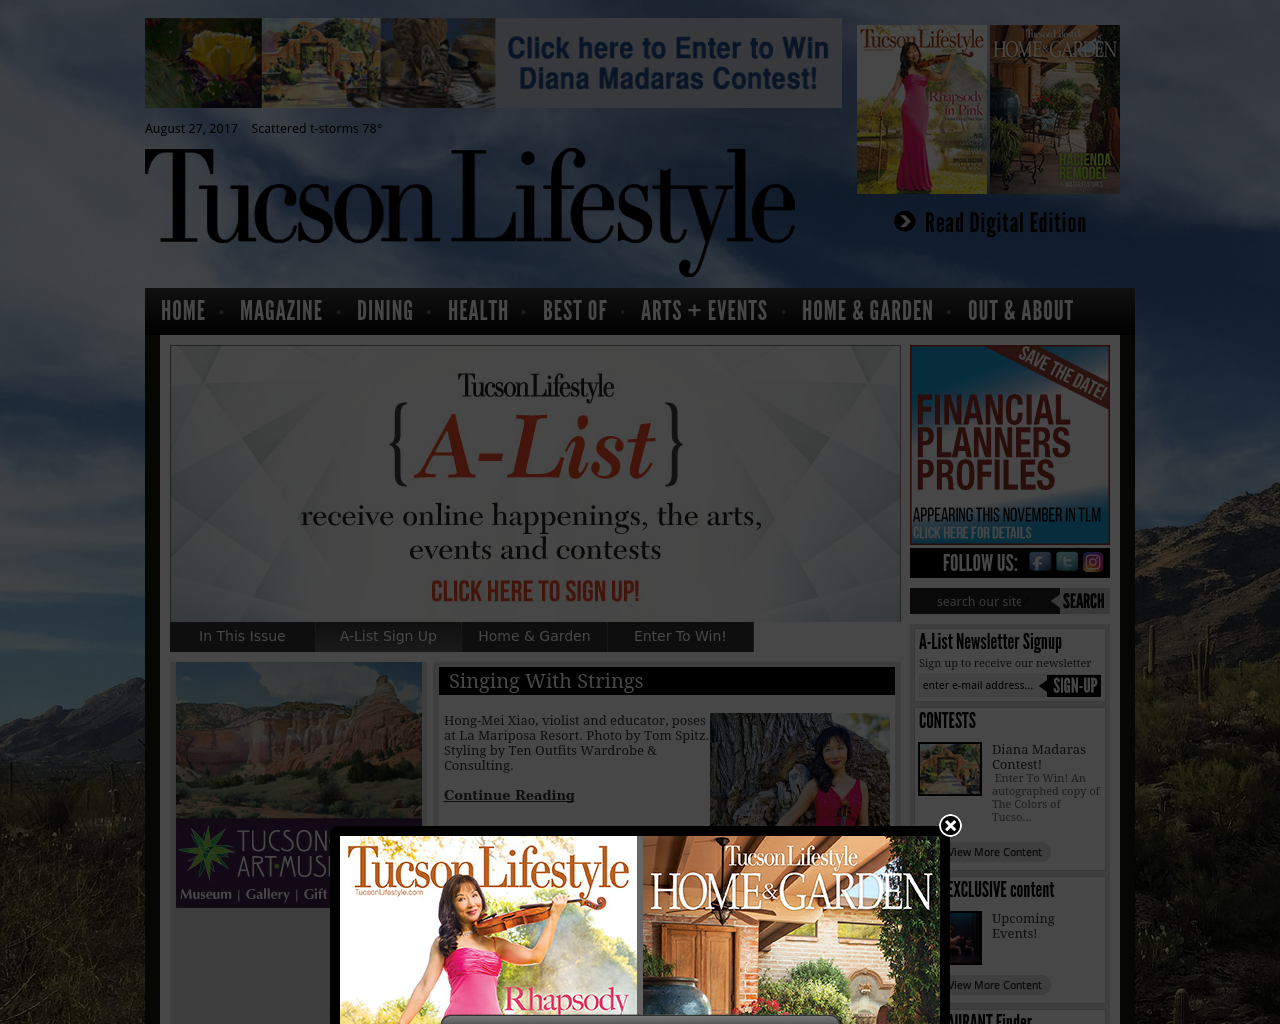 Tucson-Lifestyle-Magazine-Advertising-Reviews-Pricing